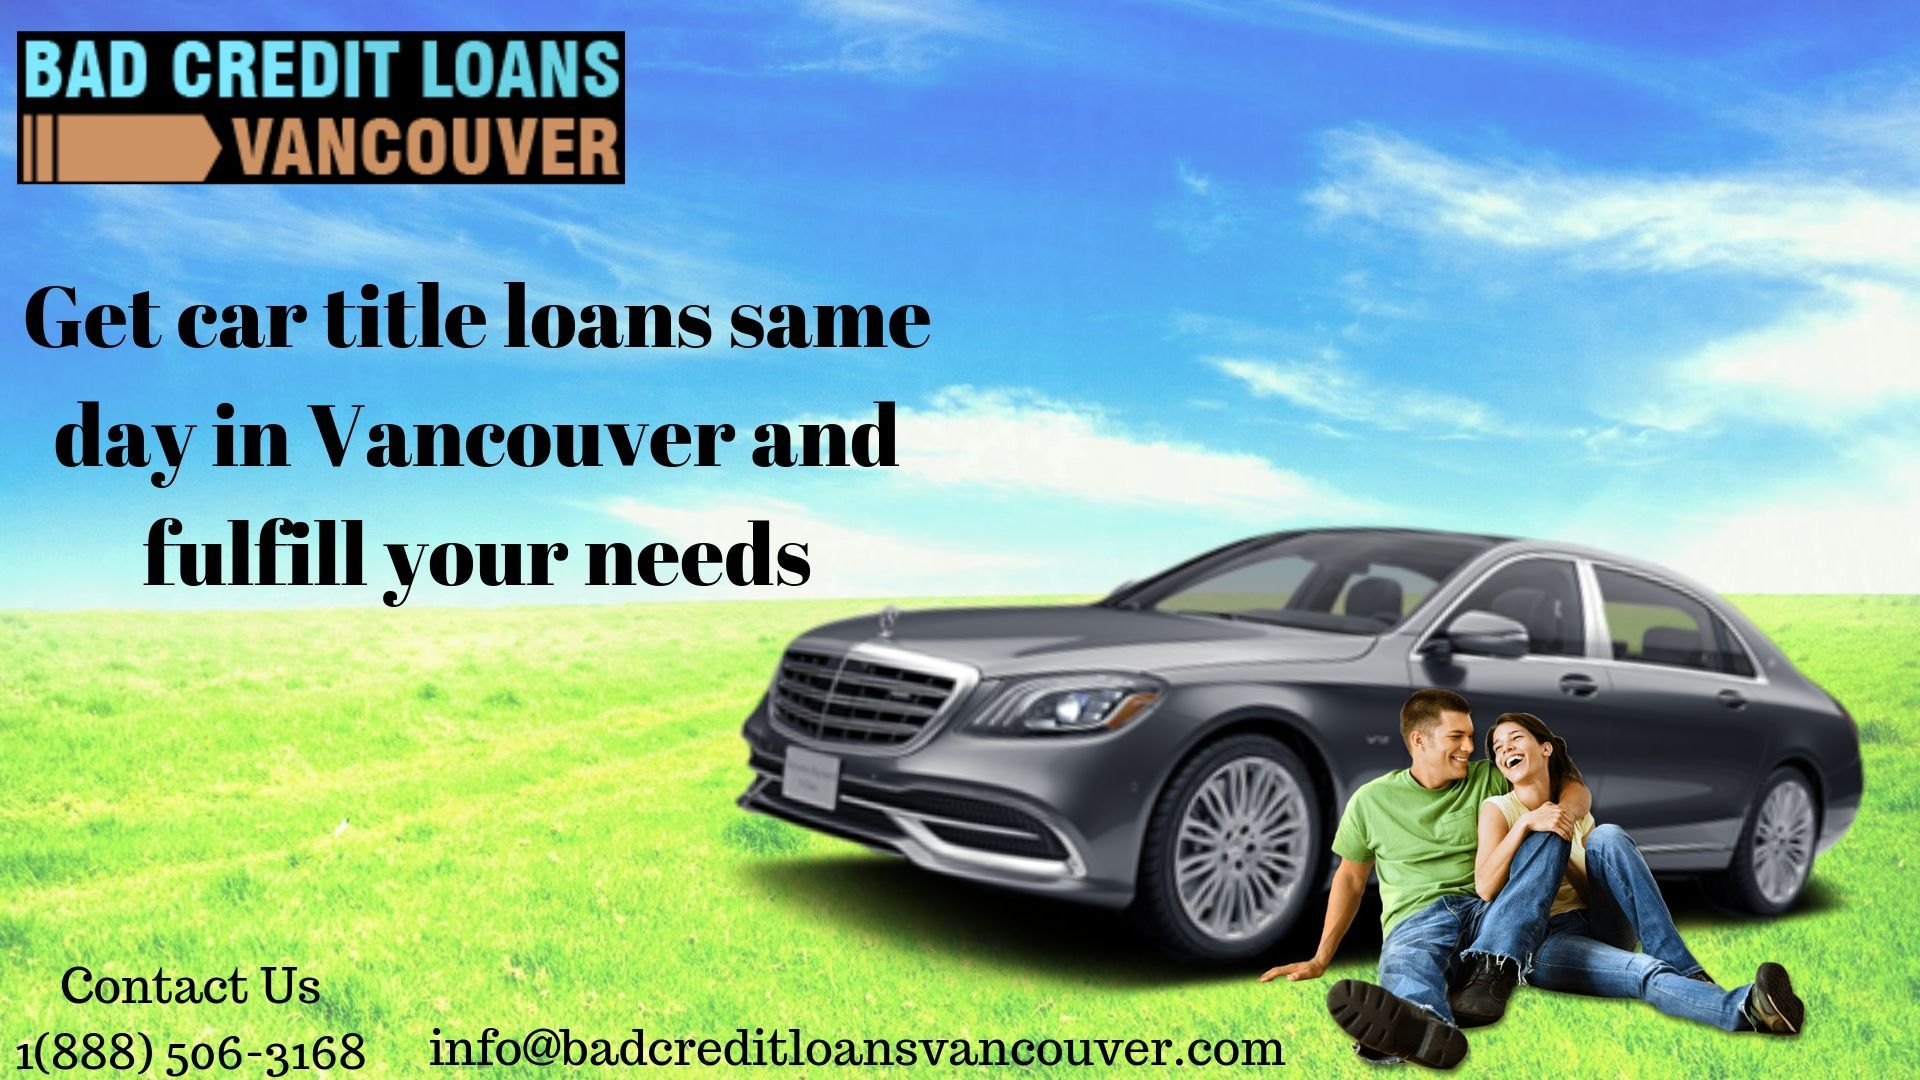 Get The Easy Credit Loan Same Day In Vancouver And Fulfill Your Needs No Credit Loans Loans For Bad Credit Car Title